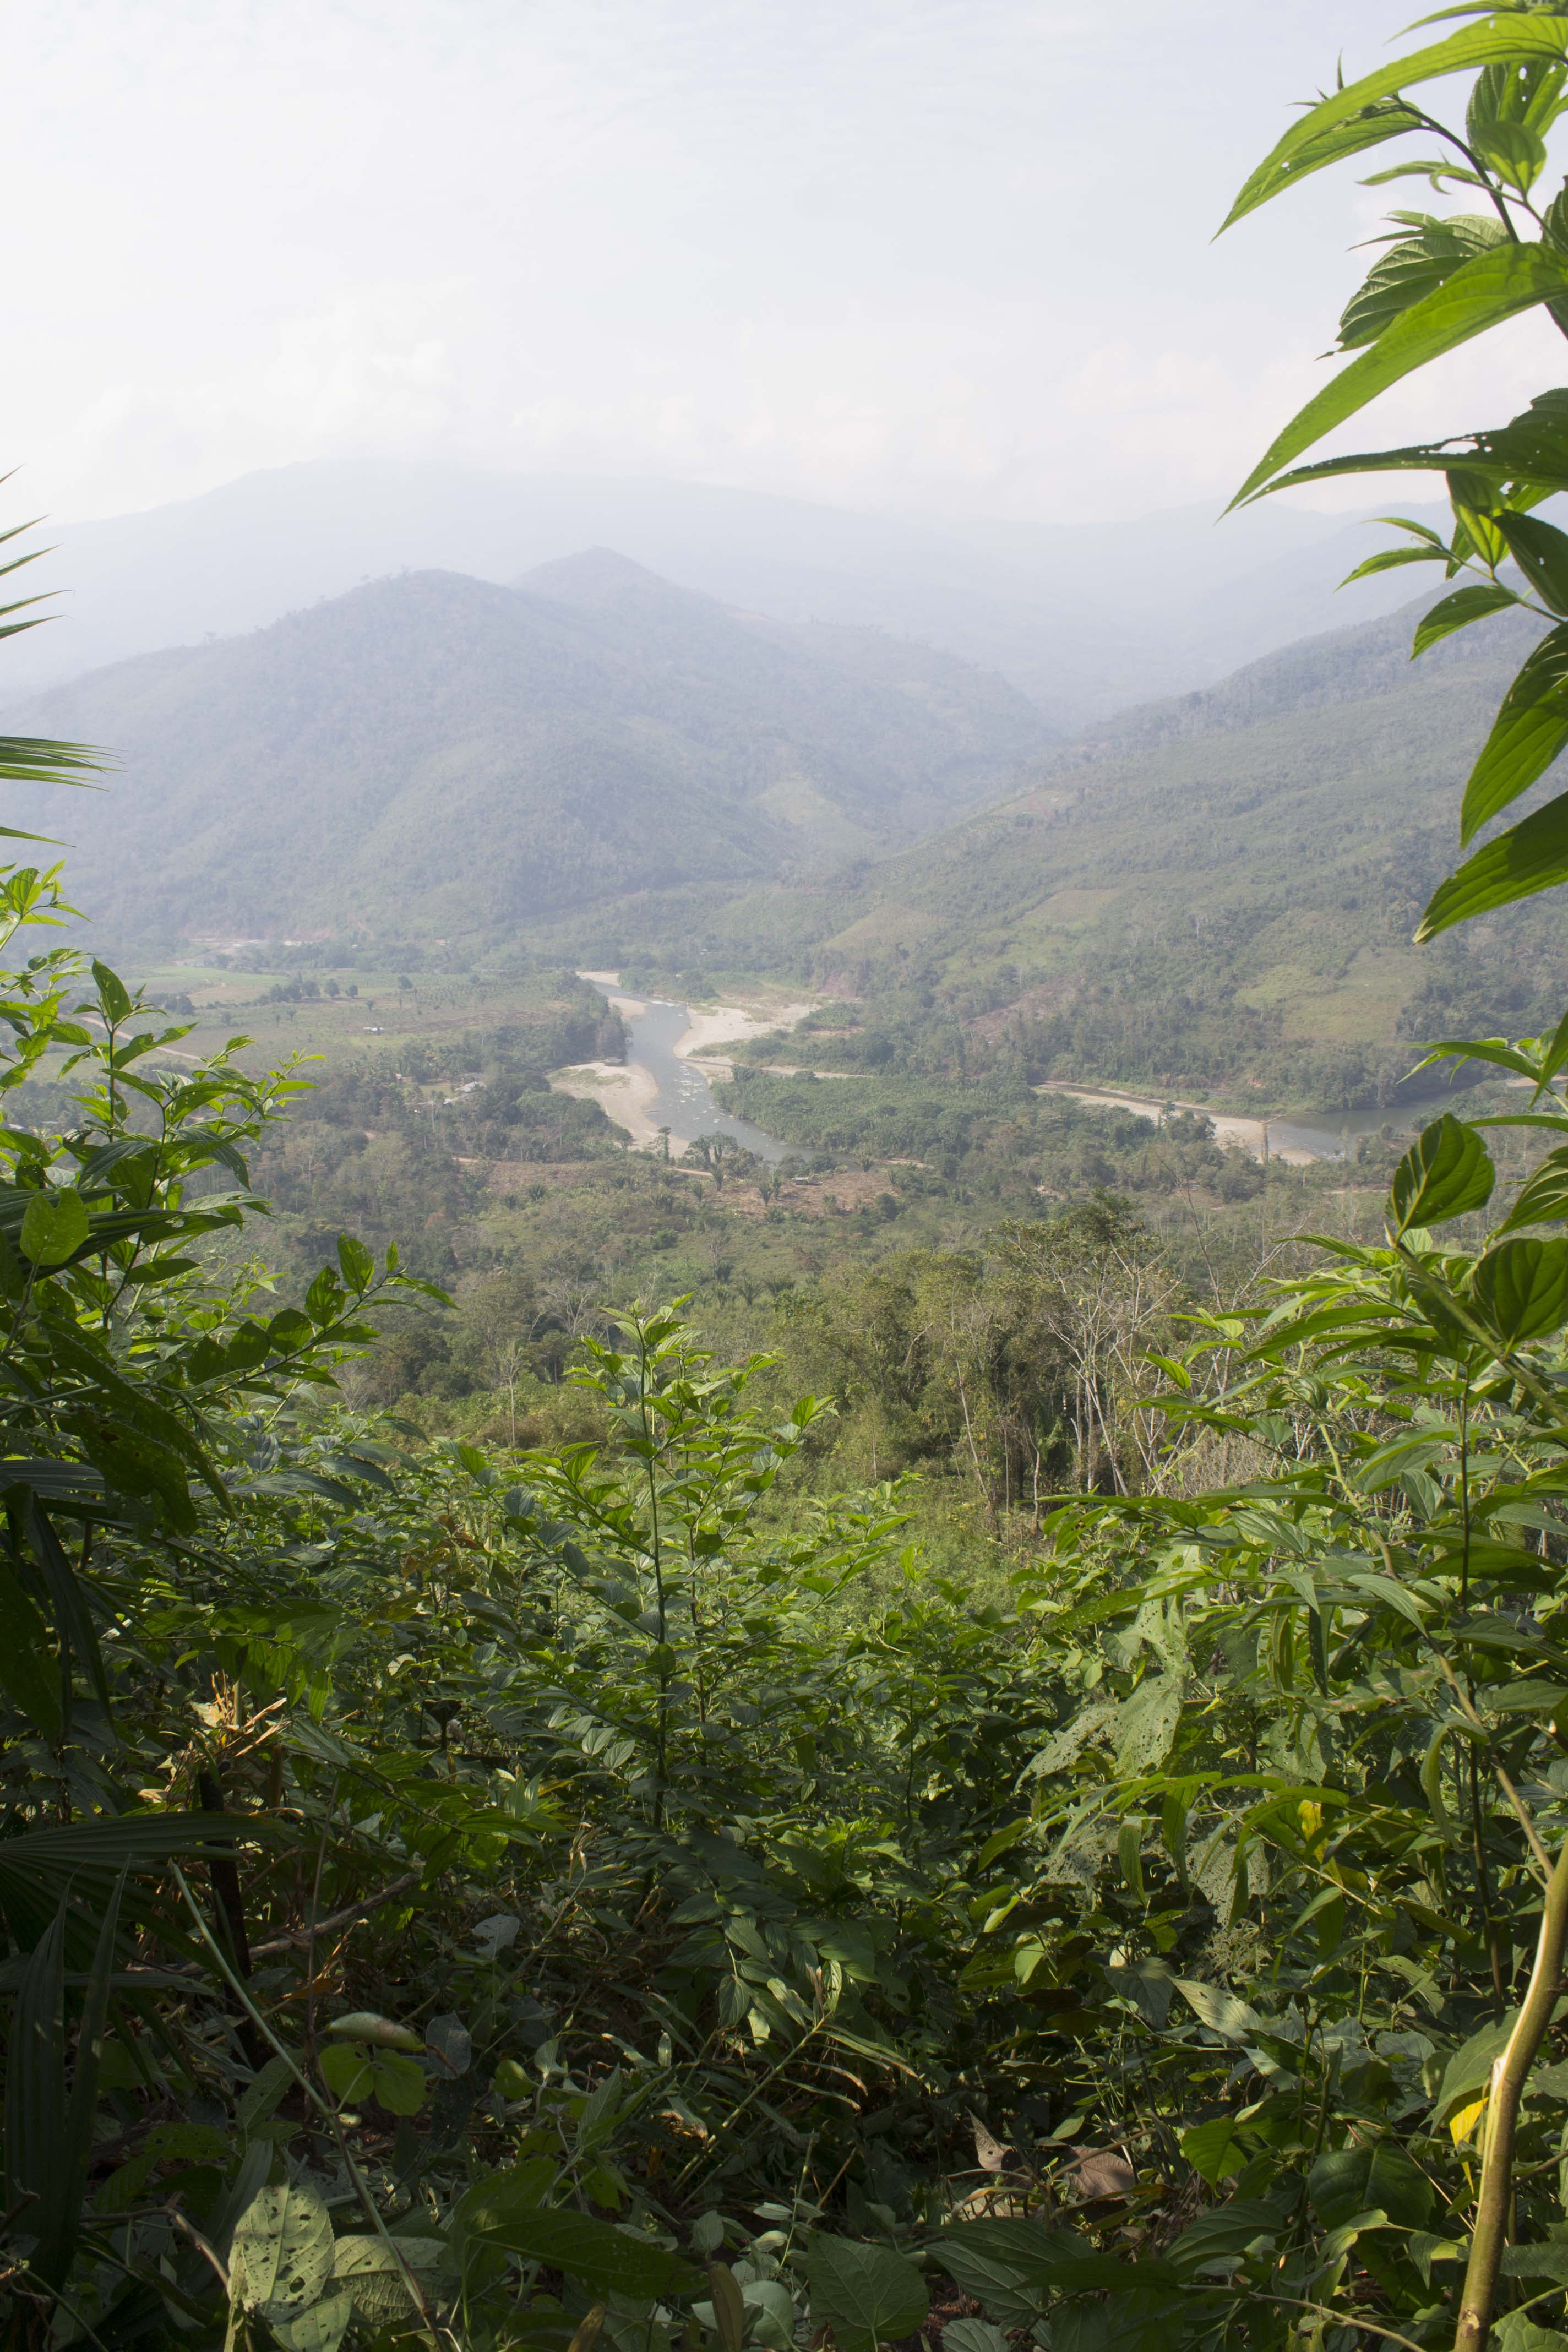 View of Peruvian mountains and valley from hillside of ginger farm